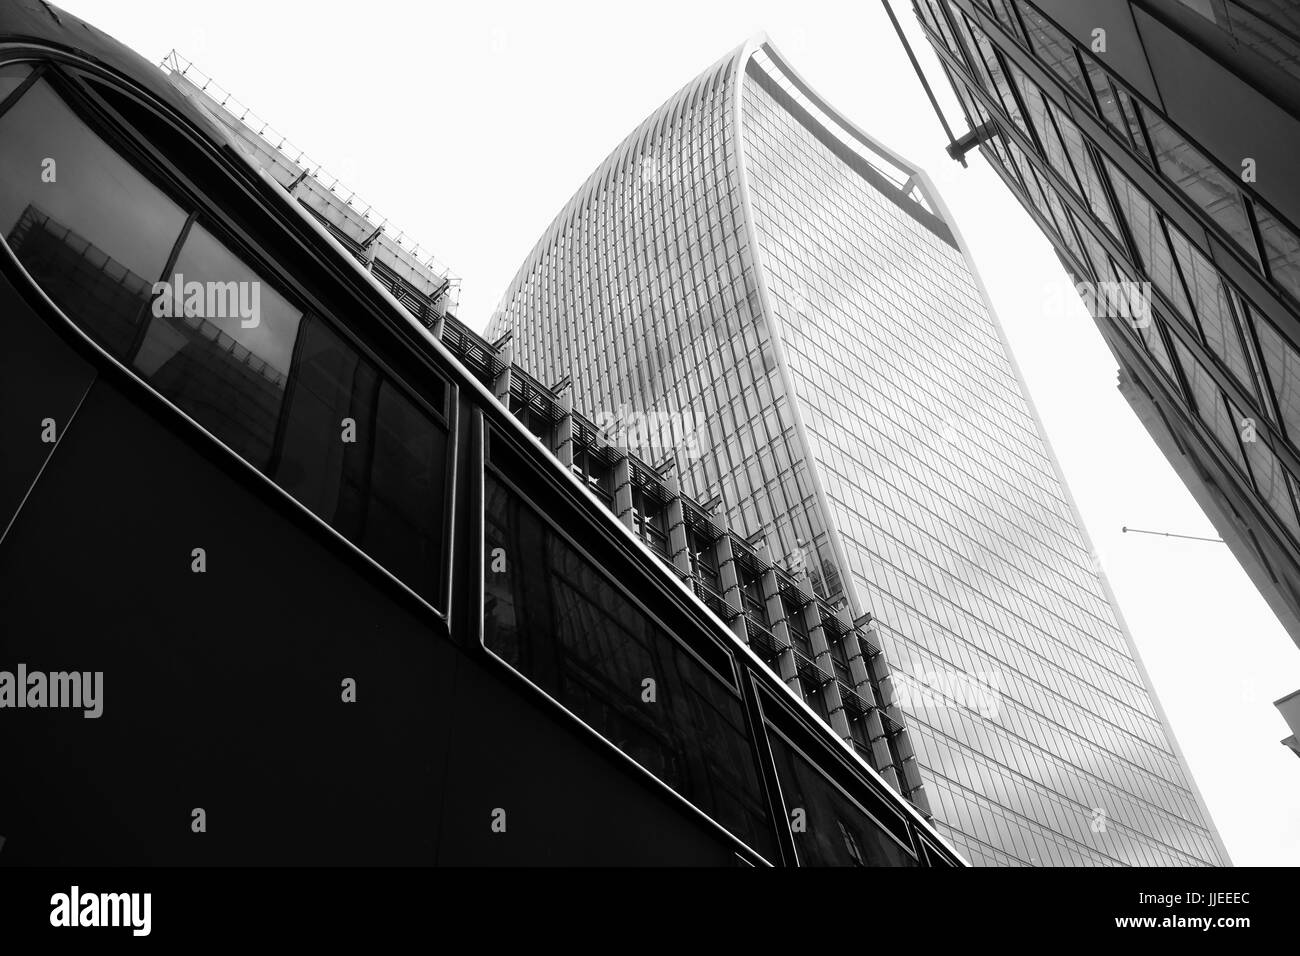 A view of the Walkie Talkie Building in Fenchurch Street, London, the financial district of the capital. Stock Photo